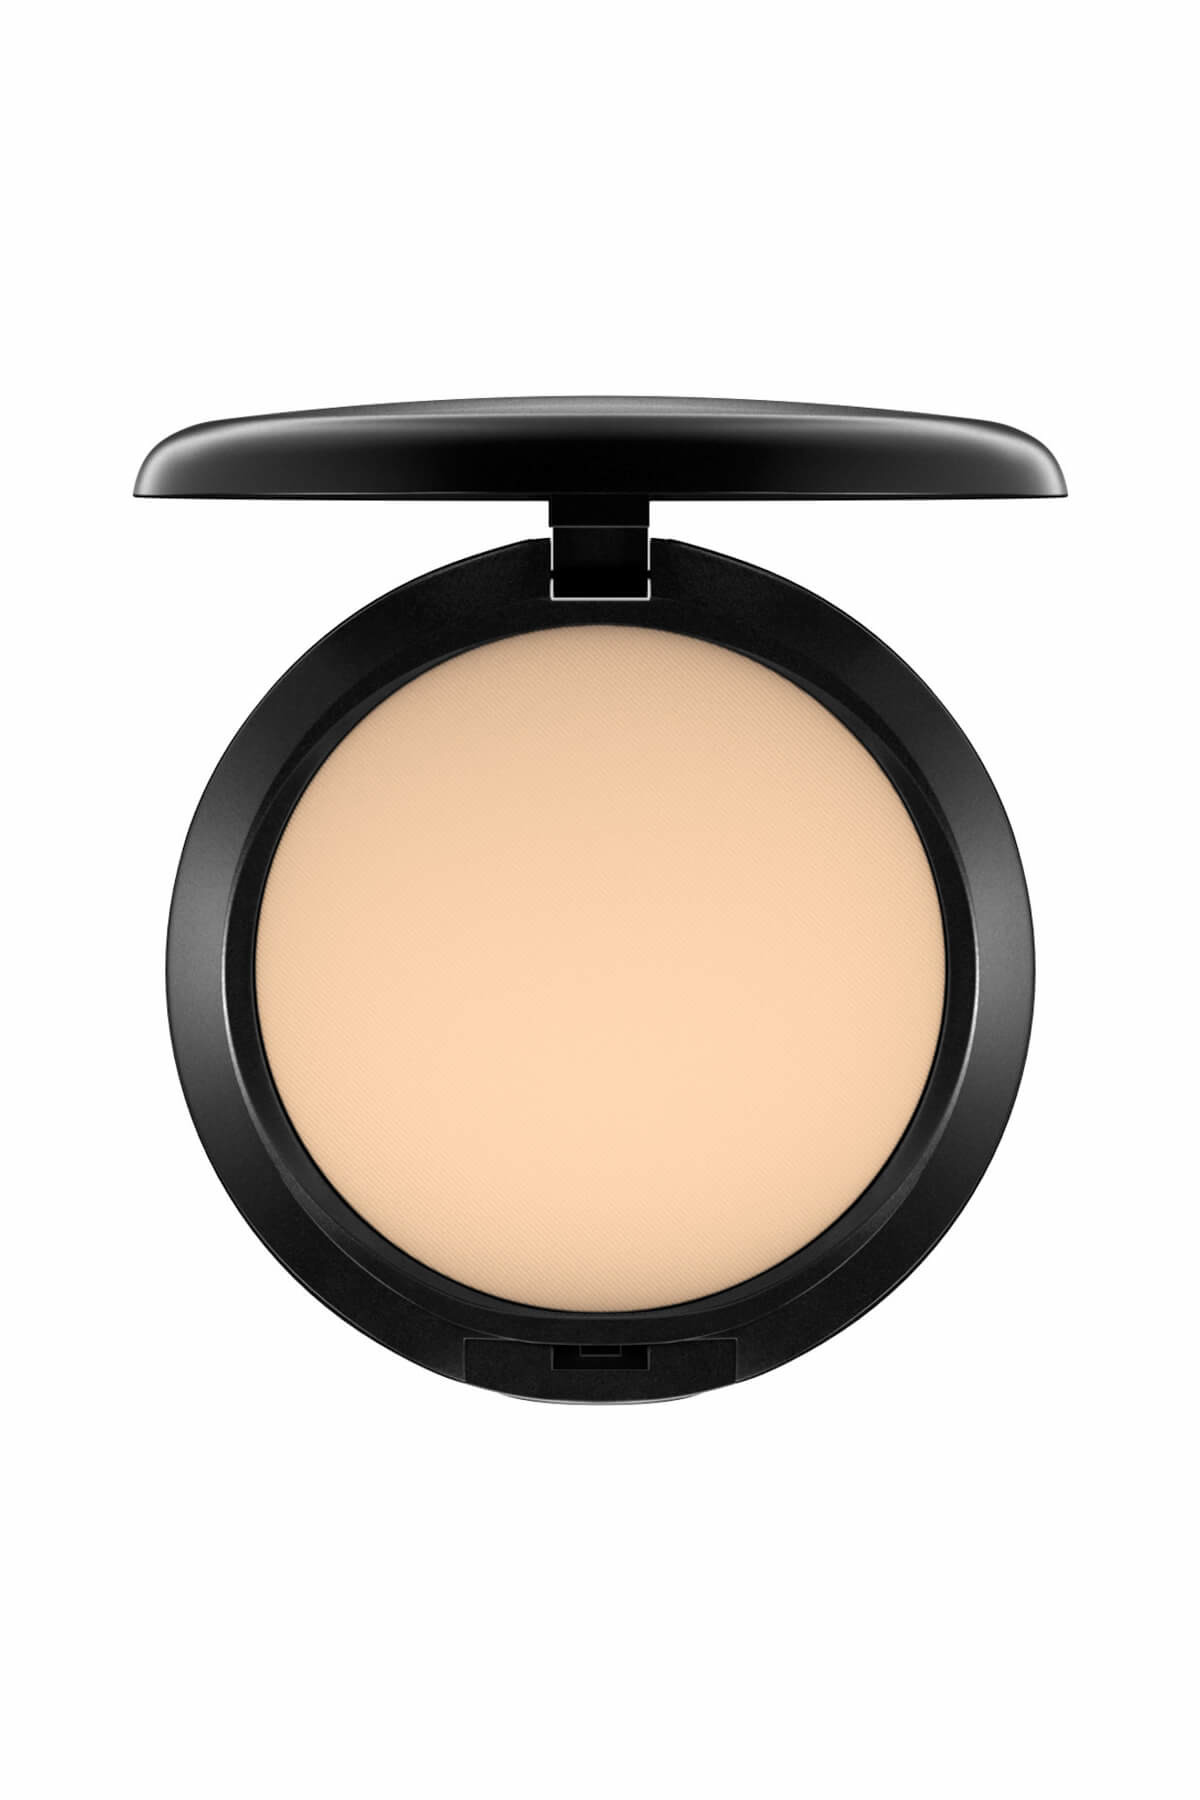 M.A.C Pudra Fondöten - Studio Fix Powder Plus Foundation NC20 15 g 773602010486 1